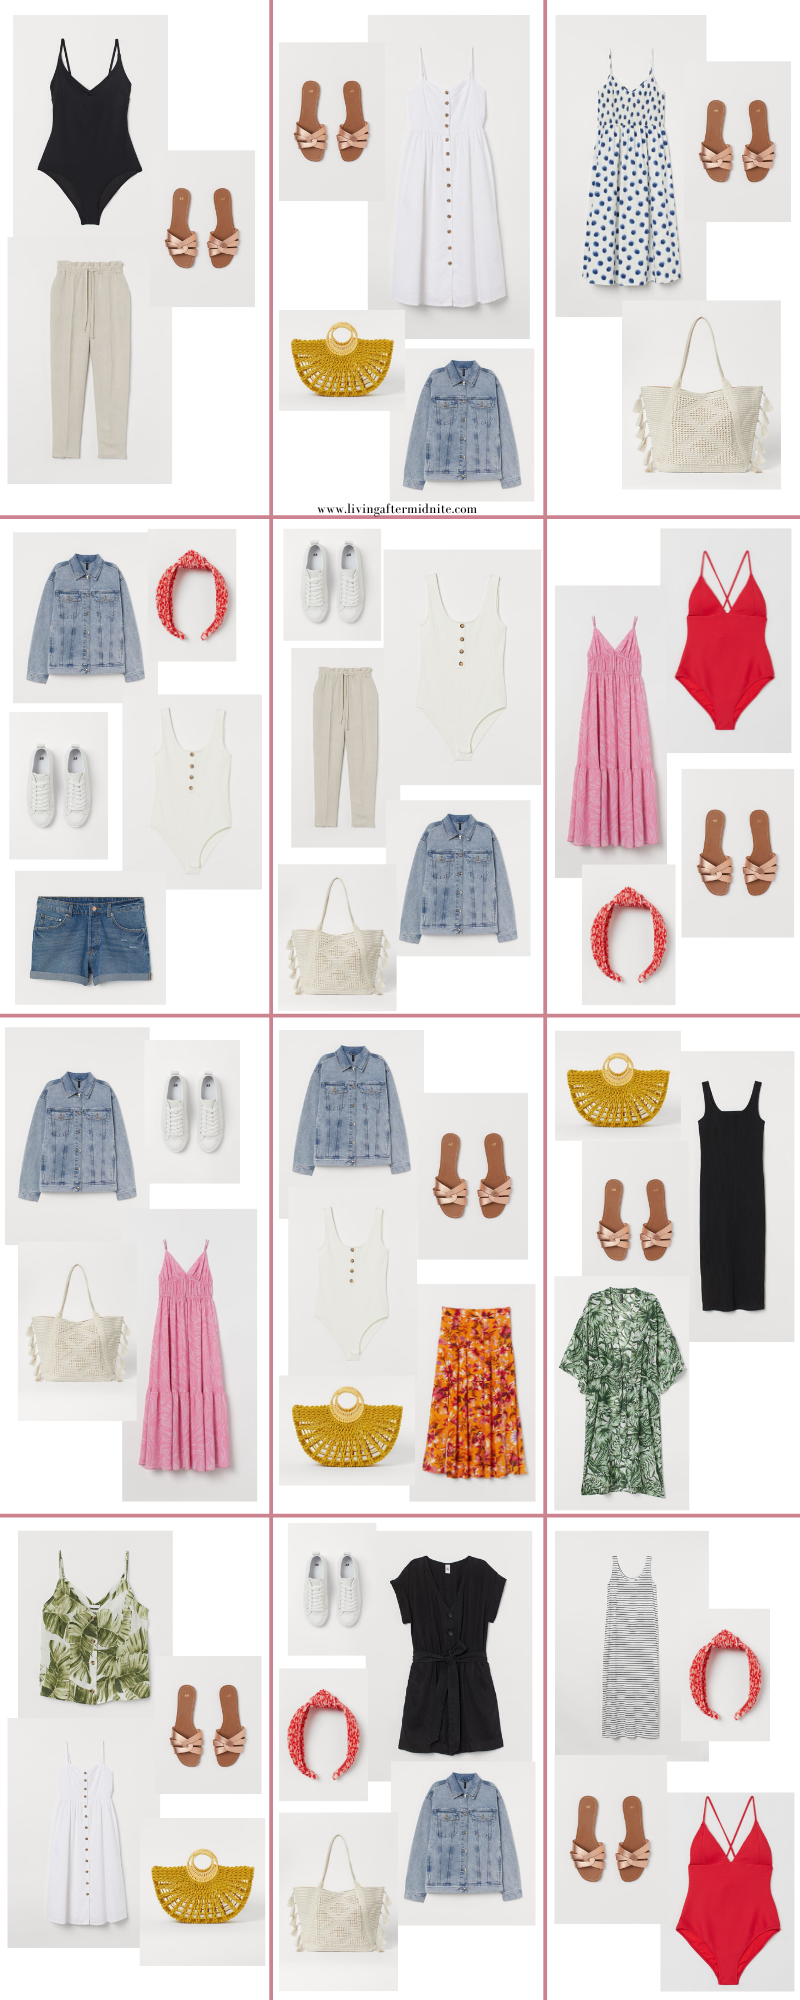 Affordable H&M Summer Capsule Wardrobe | 20 Pieces, 36+ Outfits | How to Build a Capsule Wardrobe | H&M Summer Clothes | Outfit Inspiration | 36 Warm Weather Outfit Ideas | Summer Vacation Packing Guide